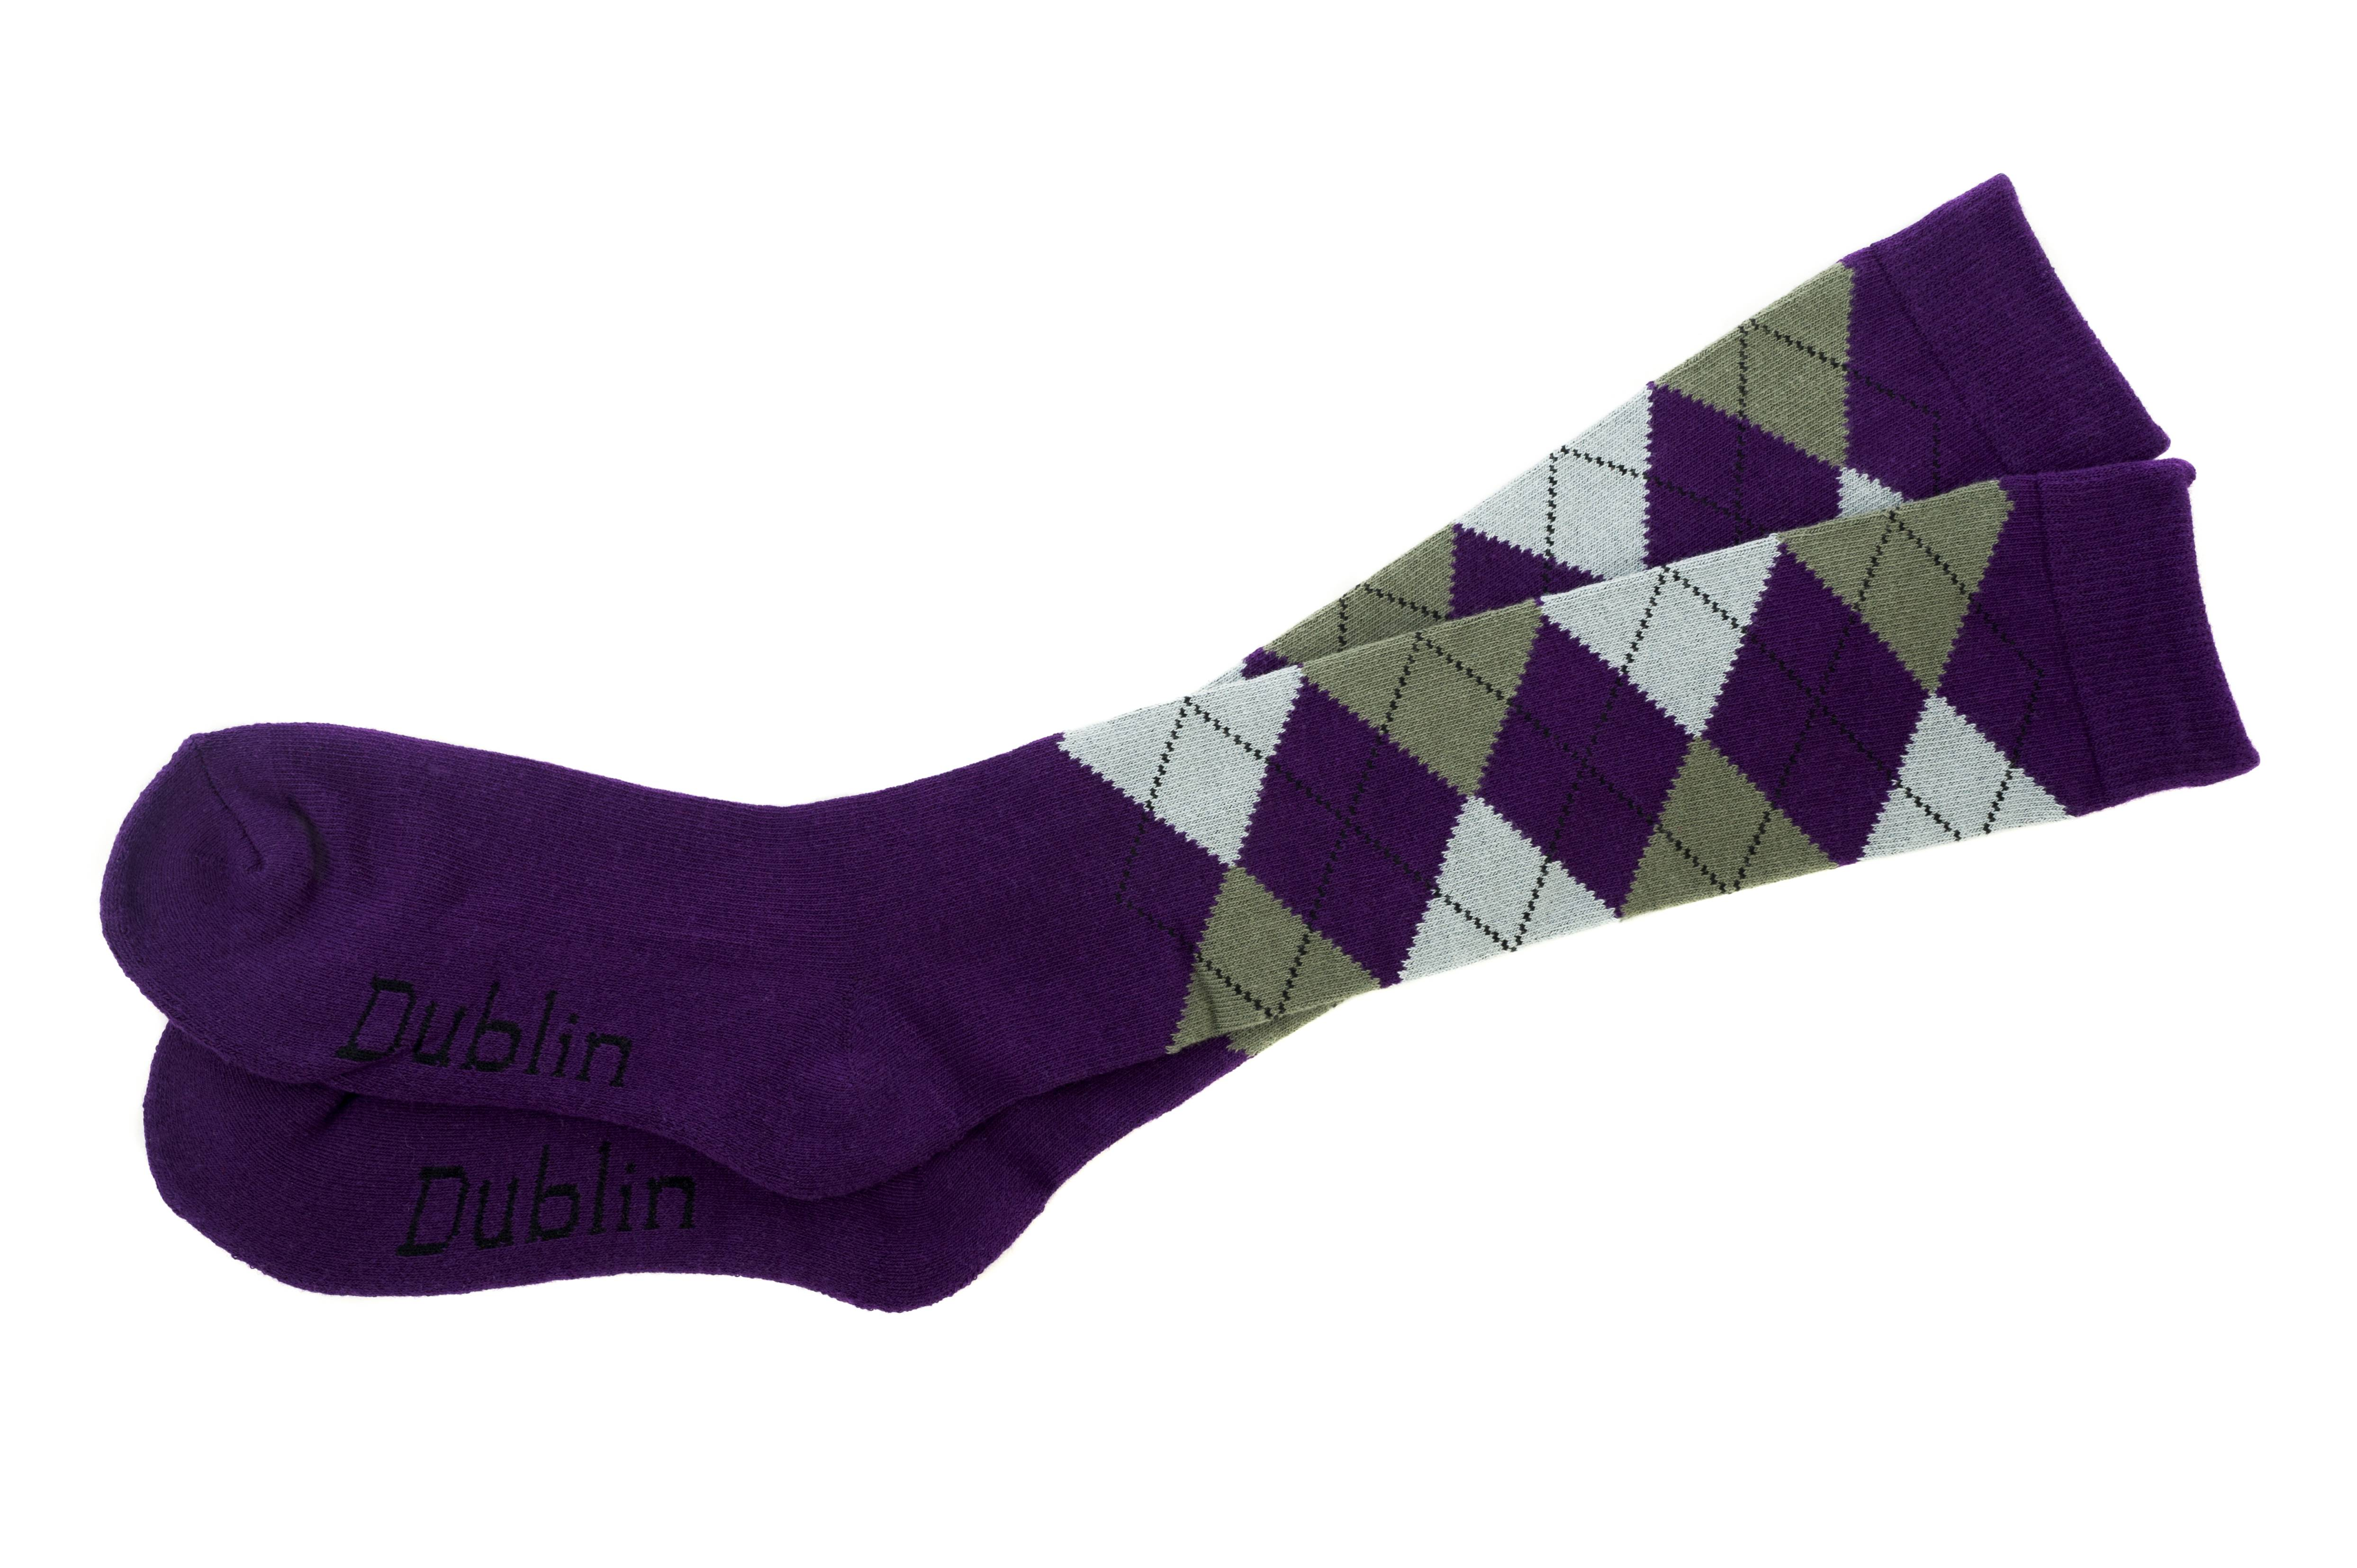 DUBLIN Argyle Riding Socks